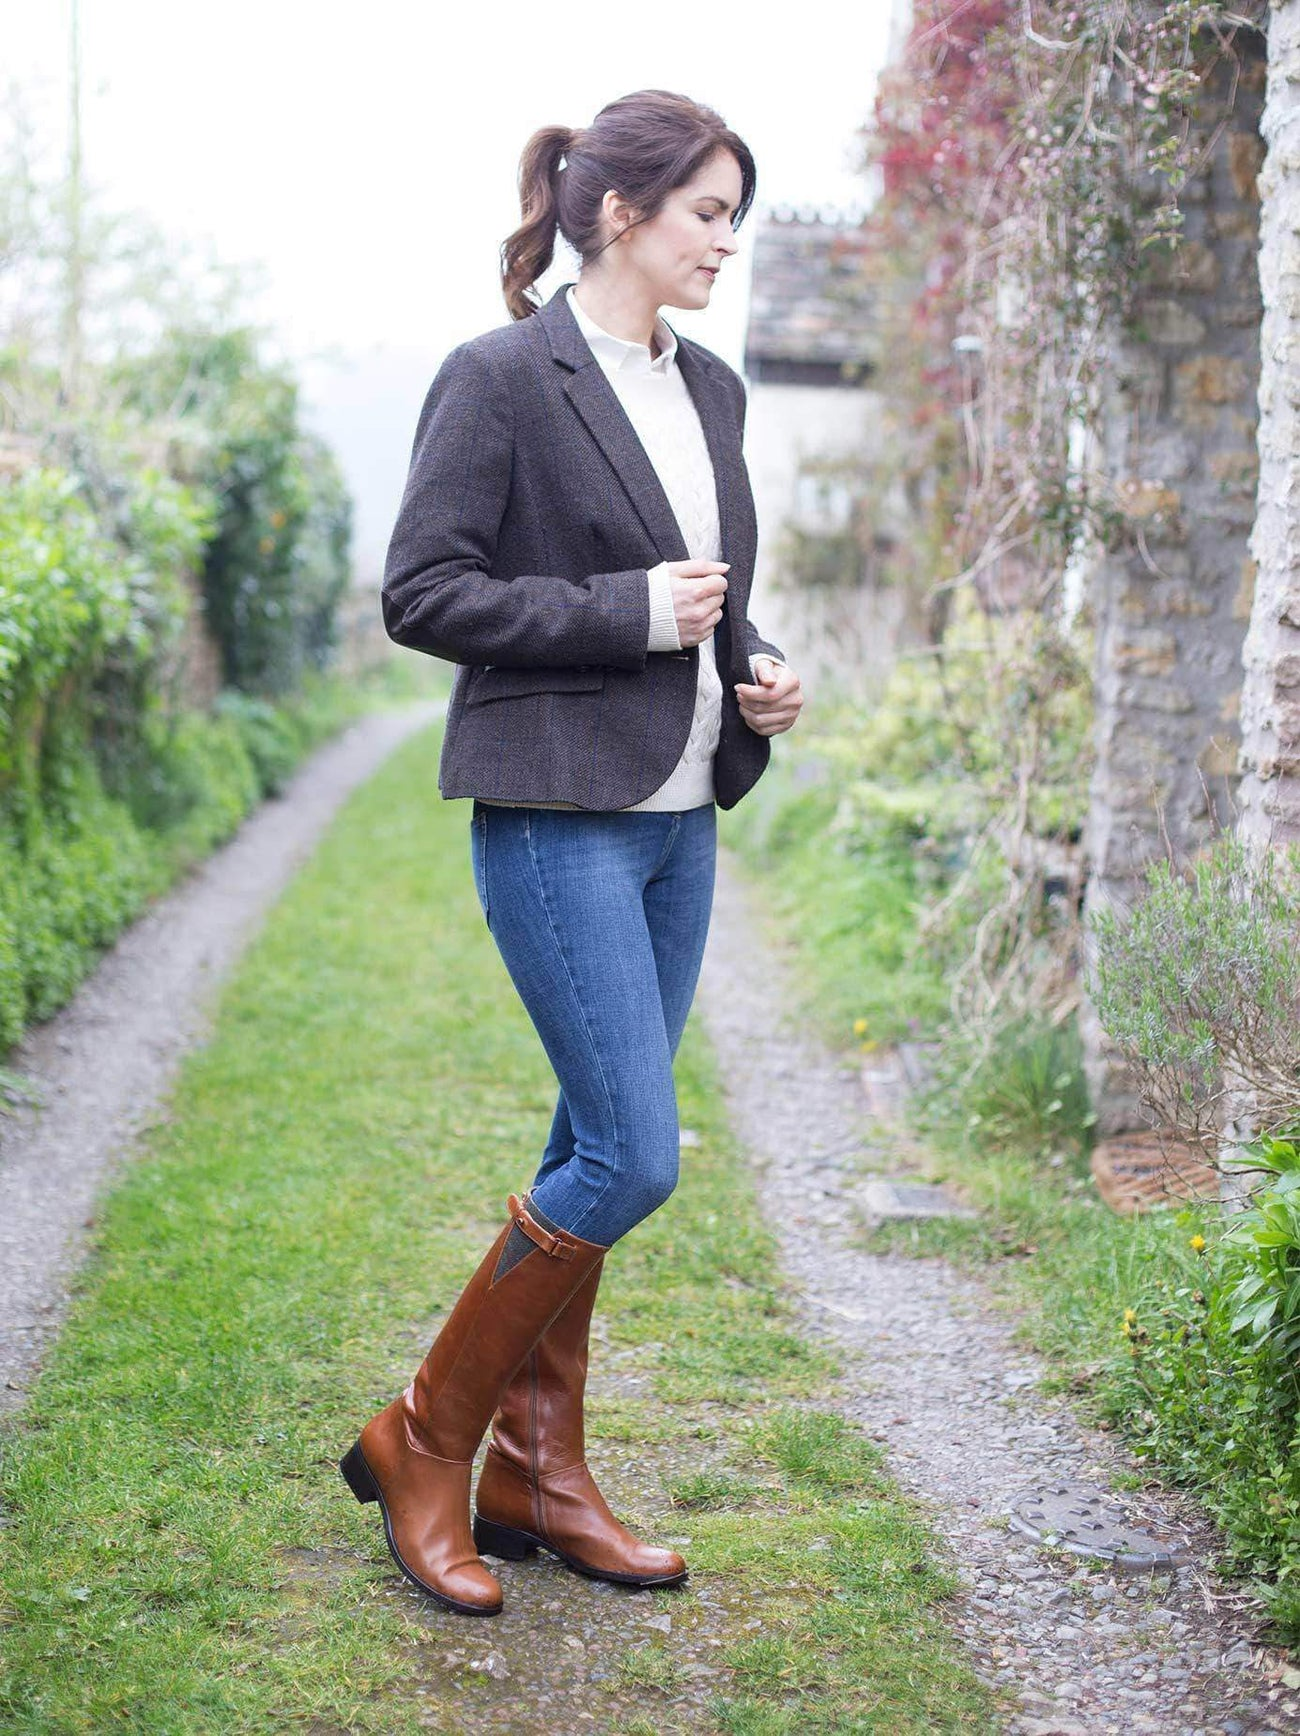 This flat tan boot has traditional sage green tweed detailing and a side strap.